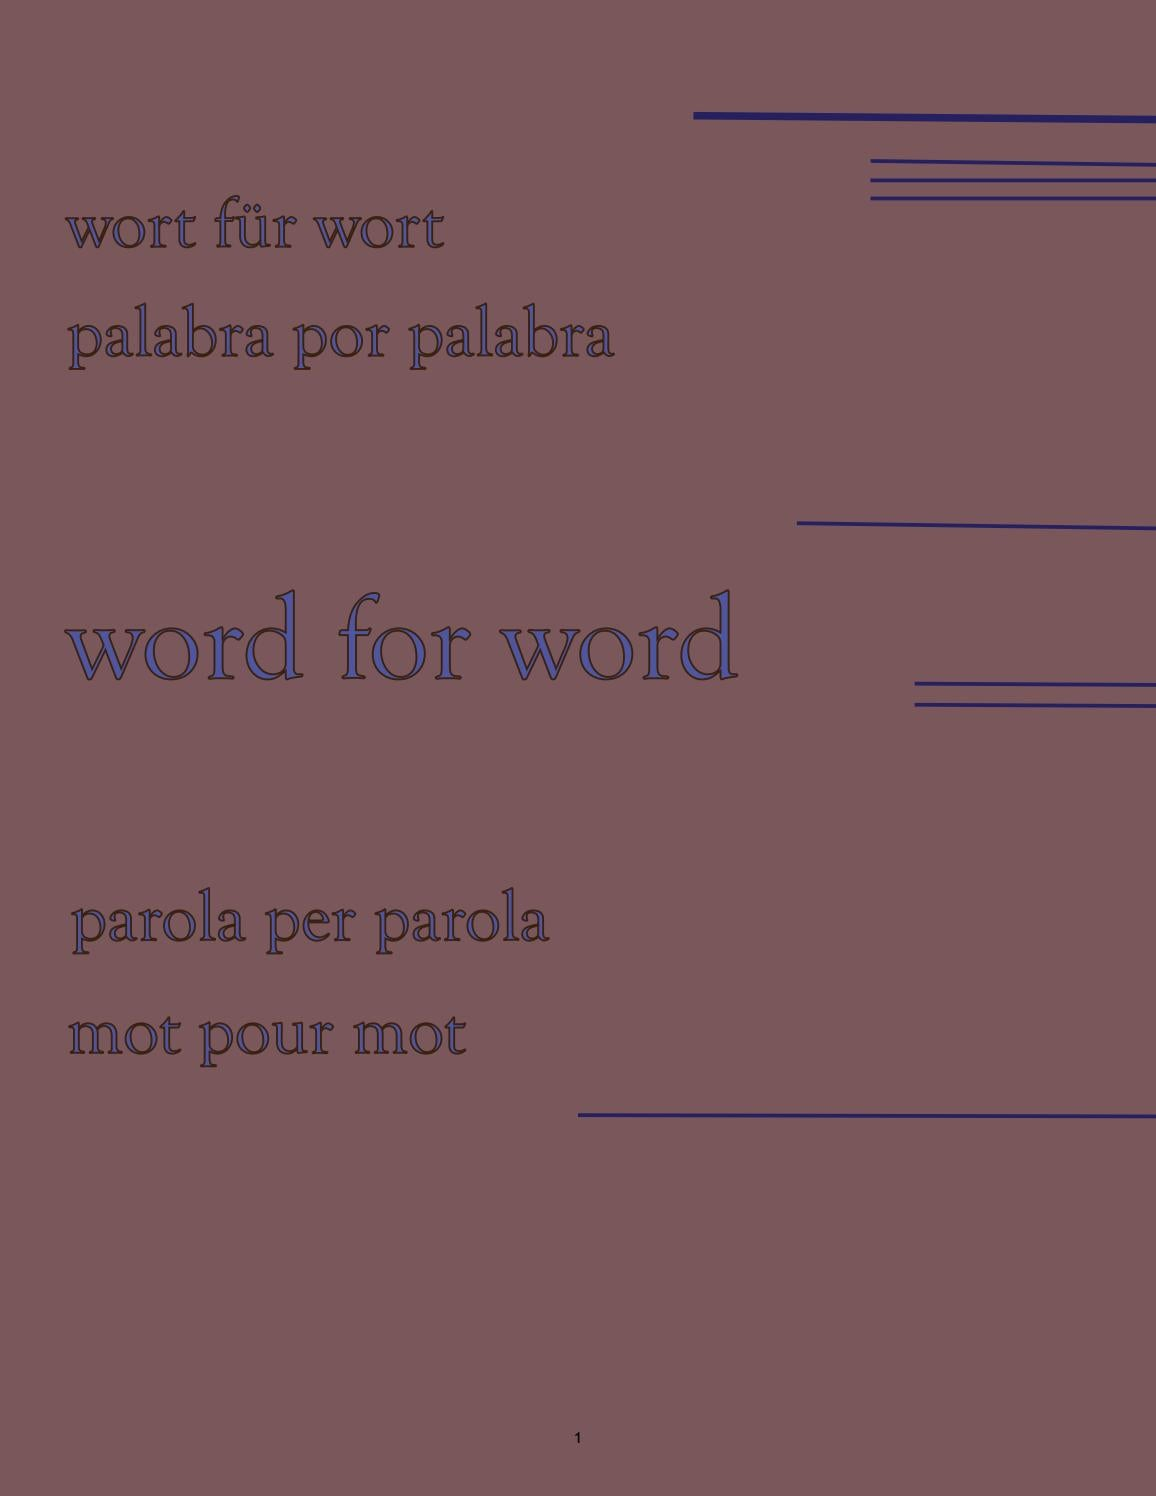 Comment Éloigner Les Poules Des Plates Bandes 2016 word for wordcusoa - issuu